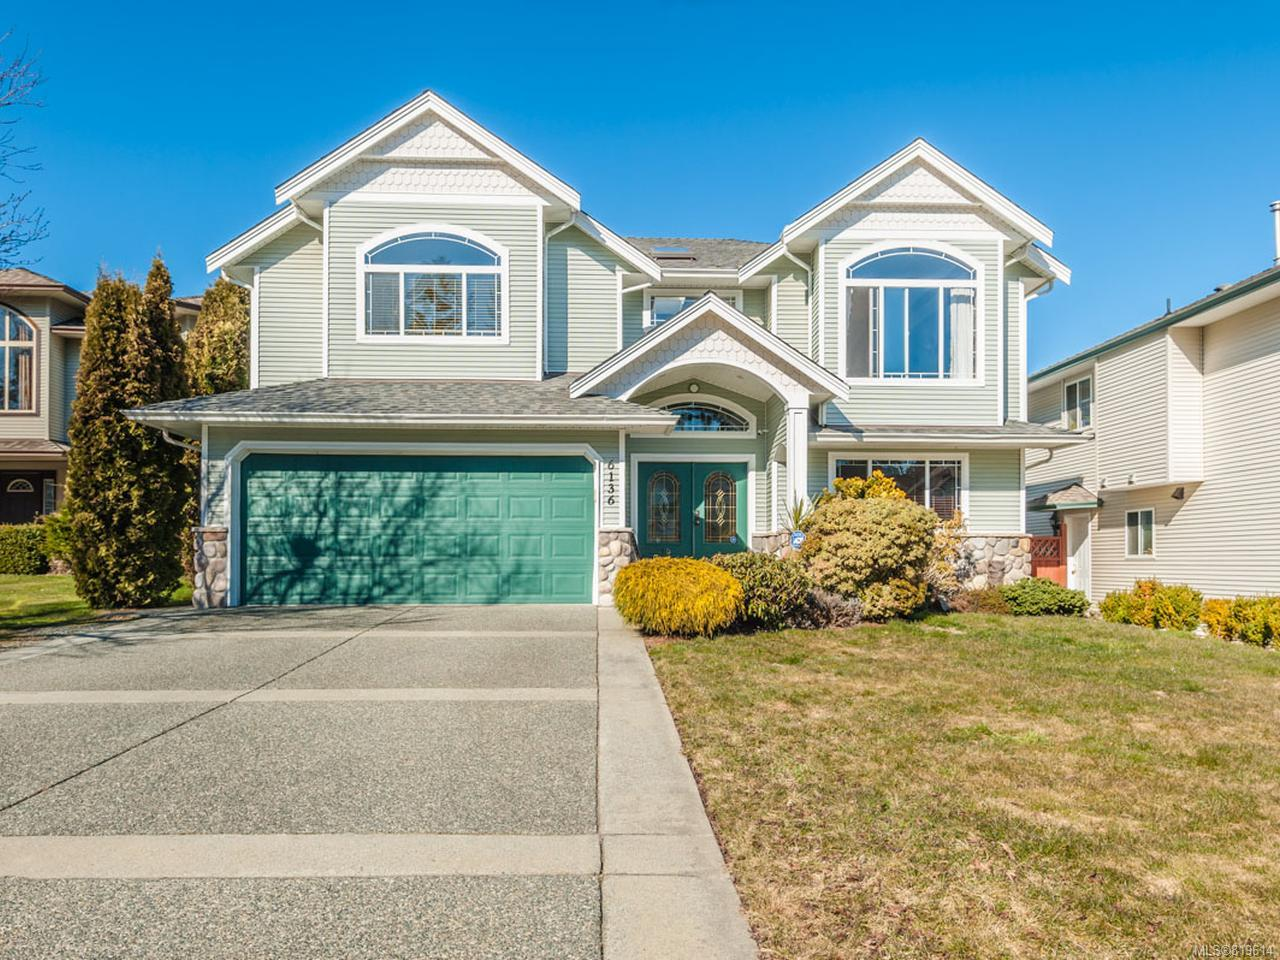 FEATURED LISTING: 6136 SOMERSIDE PLACE NANAIMO